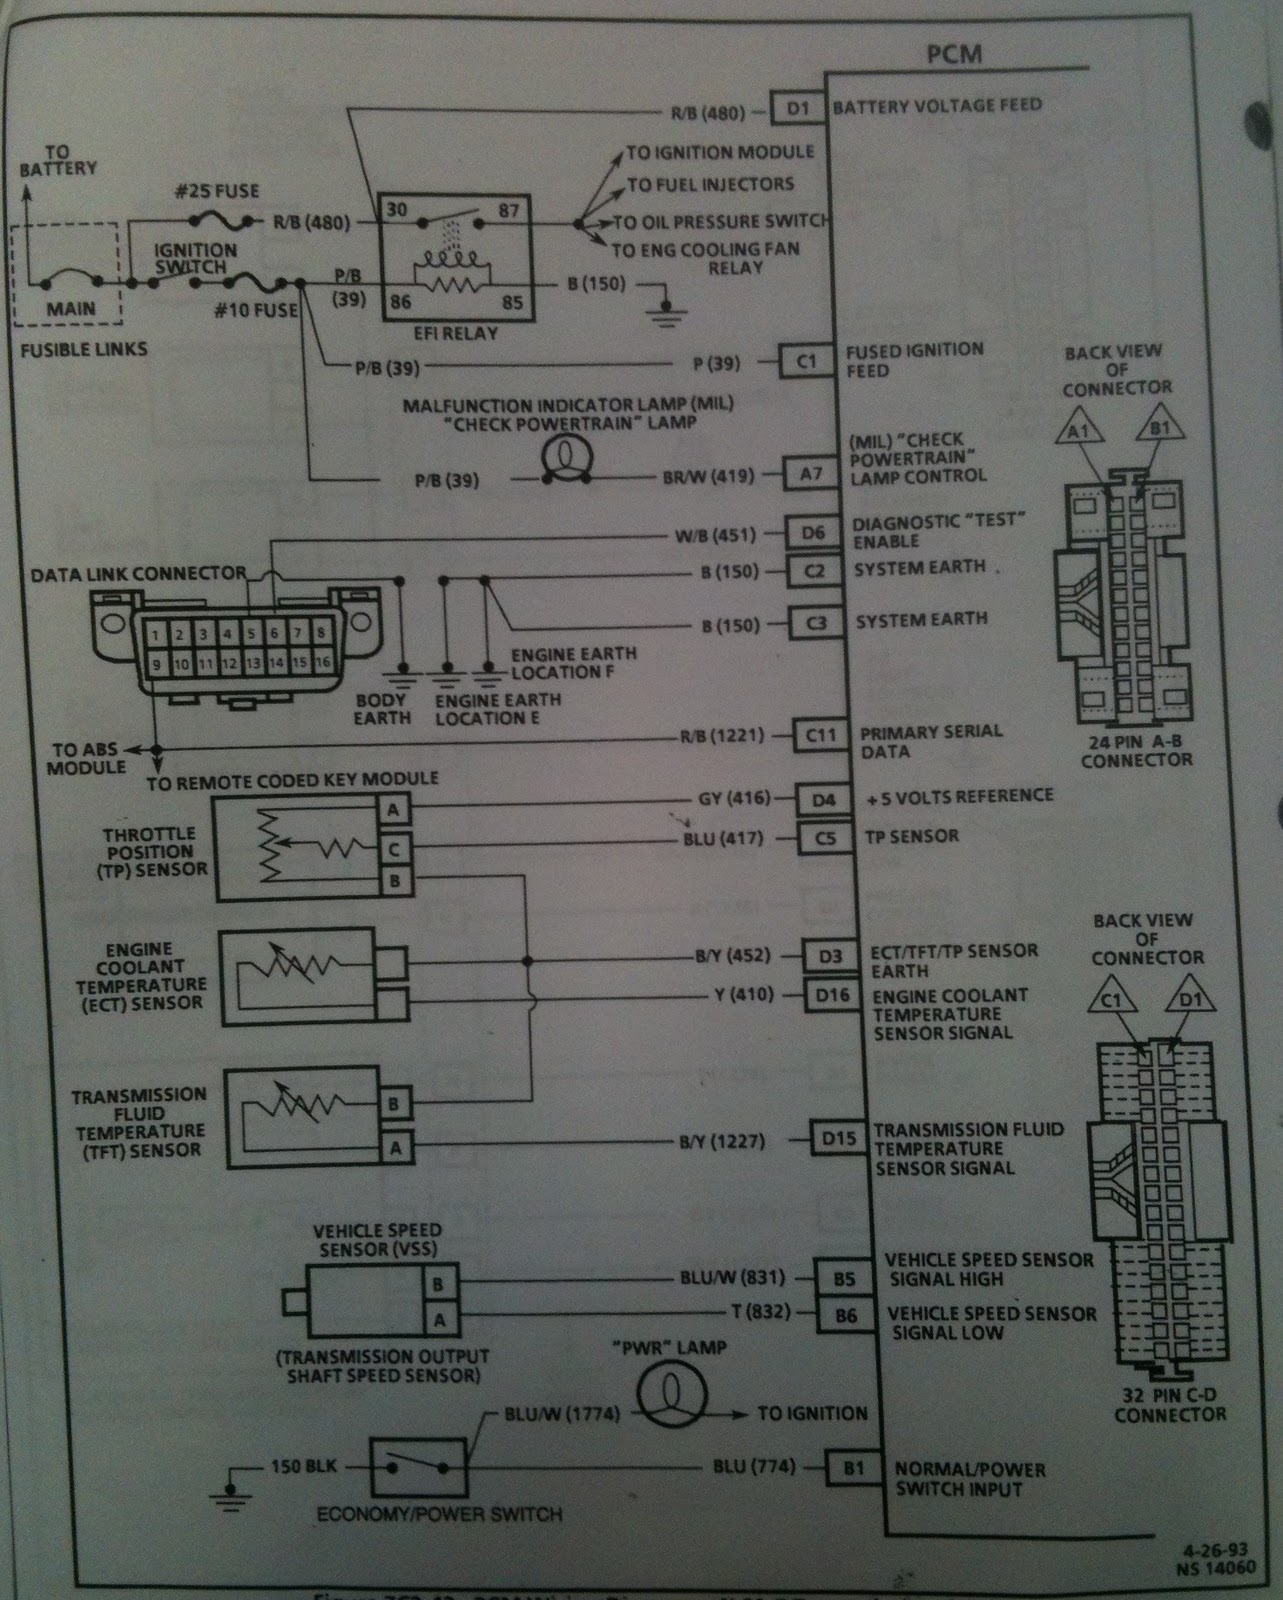 Circuit Diagram Abbreviations